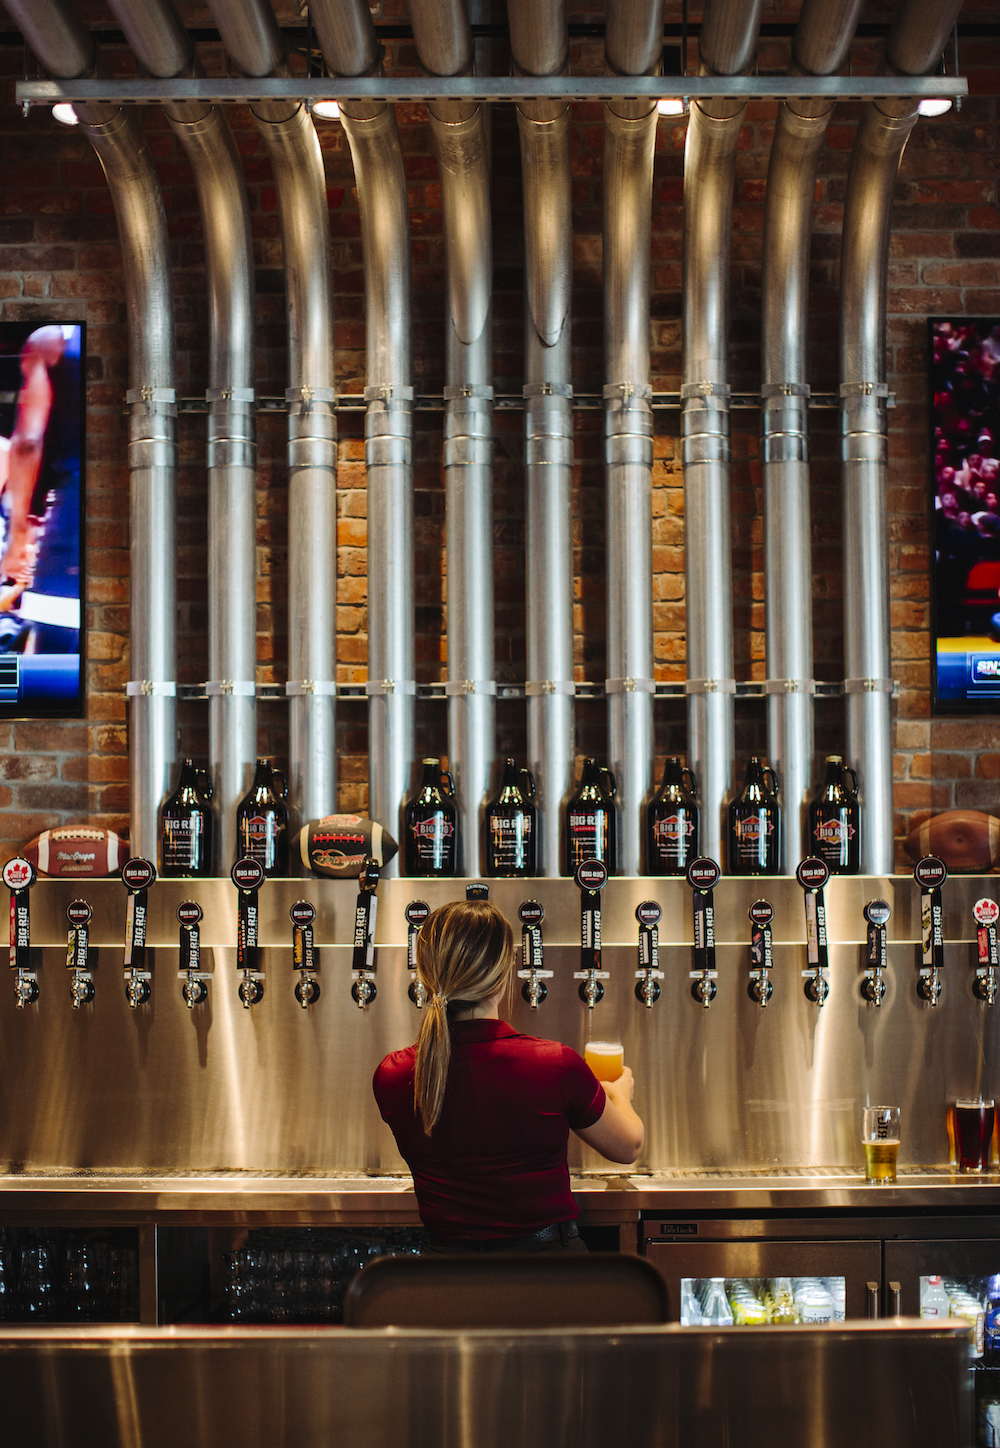 Big Rig Kitchen & Brewery - For the Love of Beer